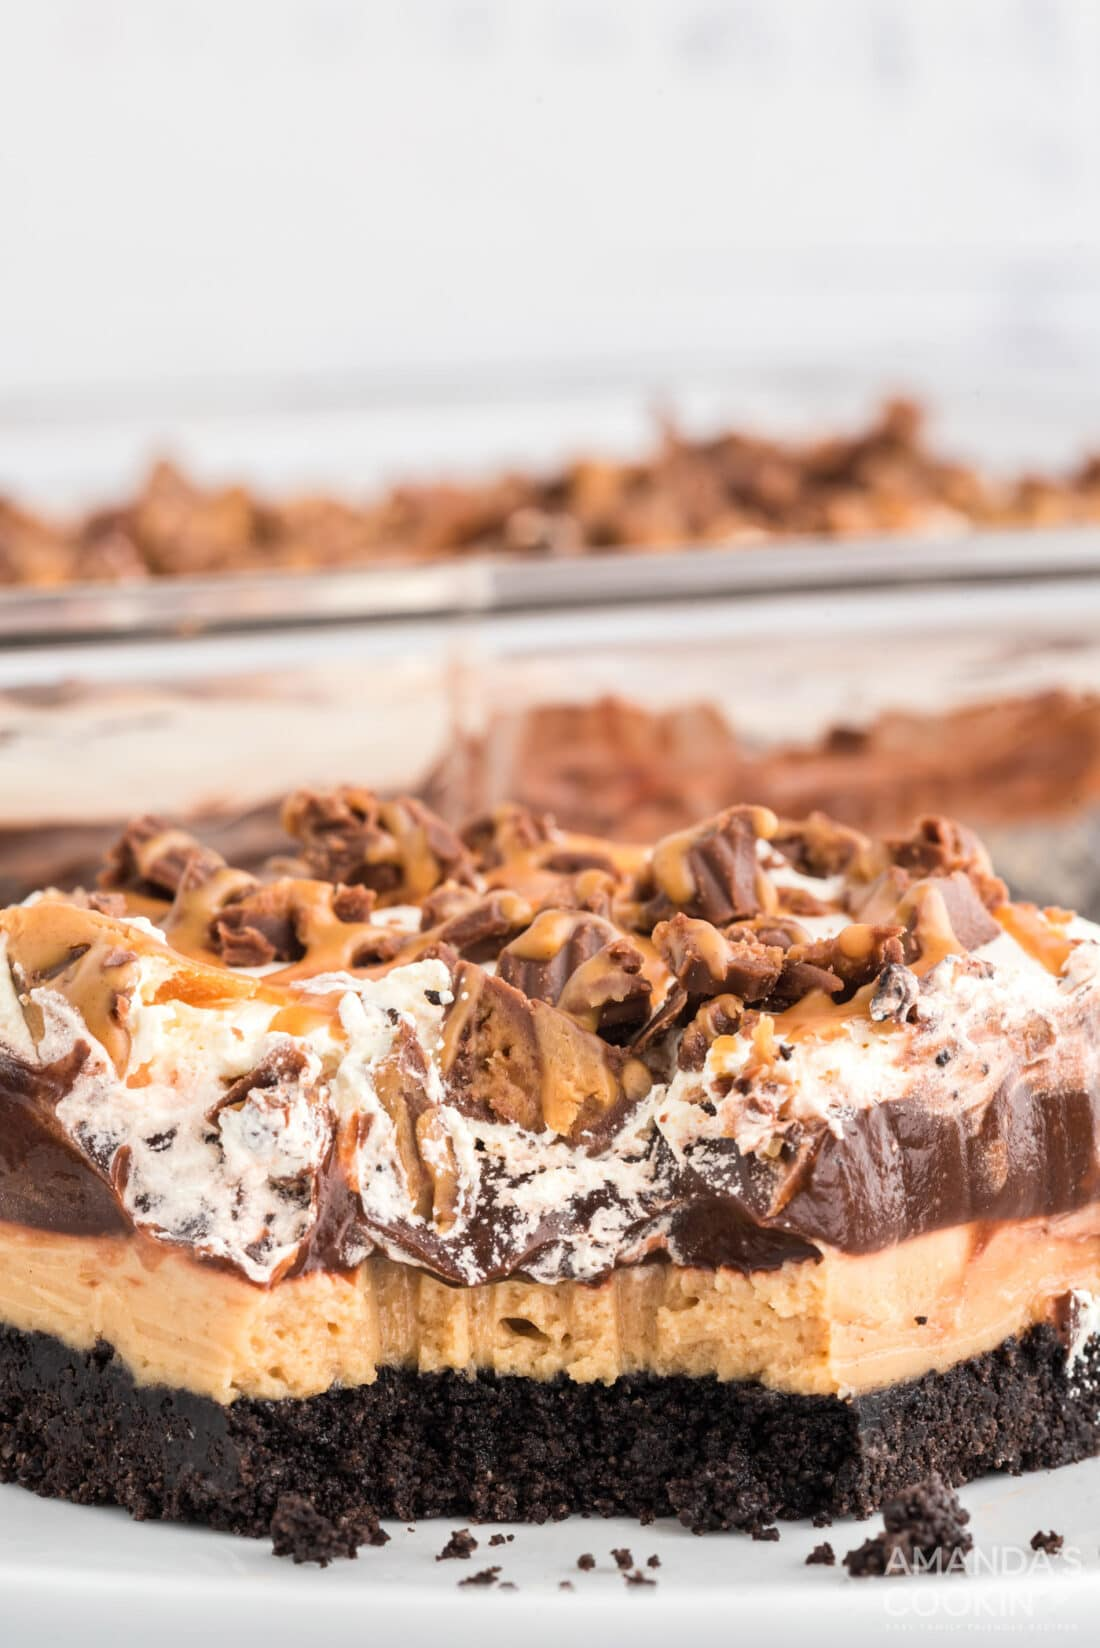 Chocolate Peanut Butter Lasagna  with a bite removed